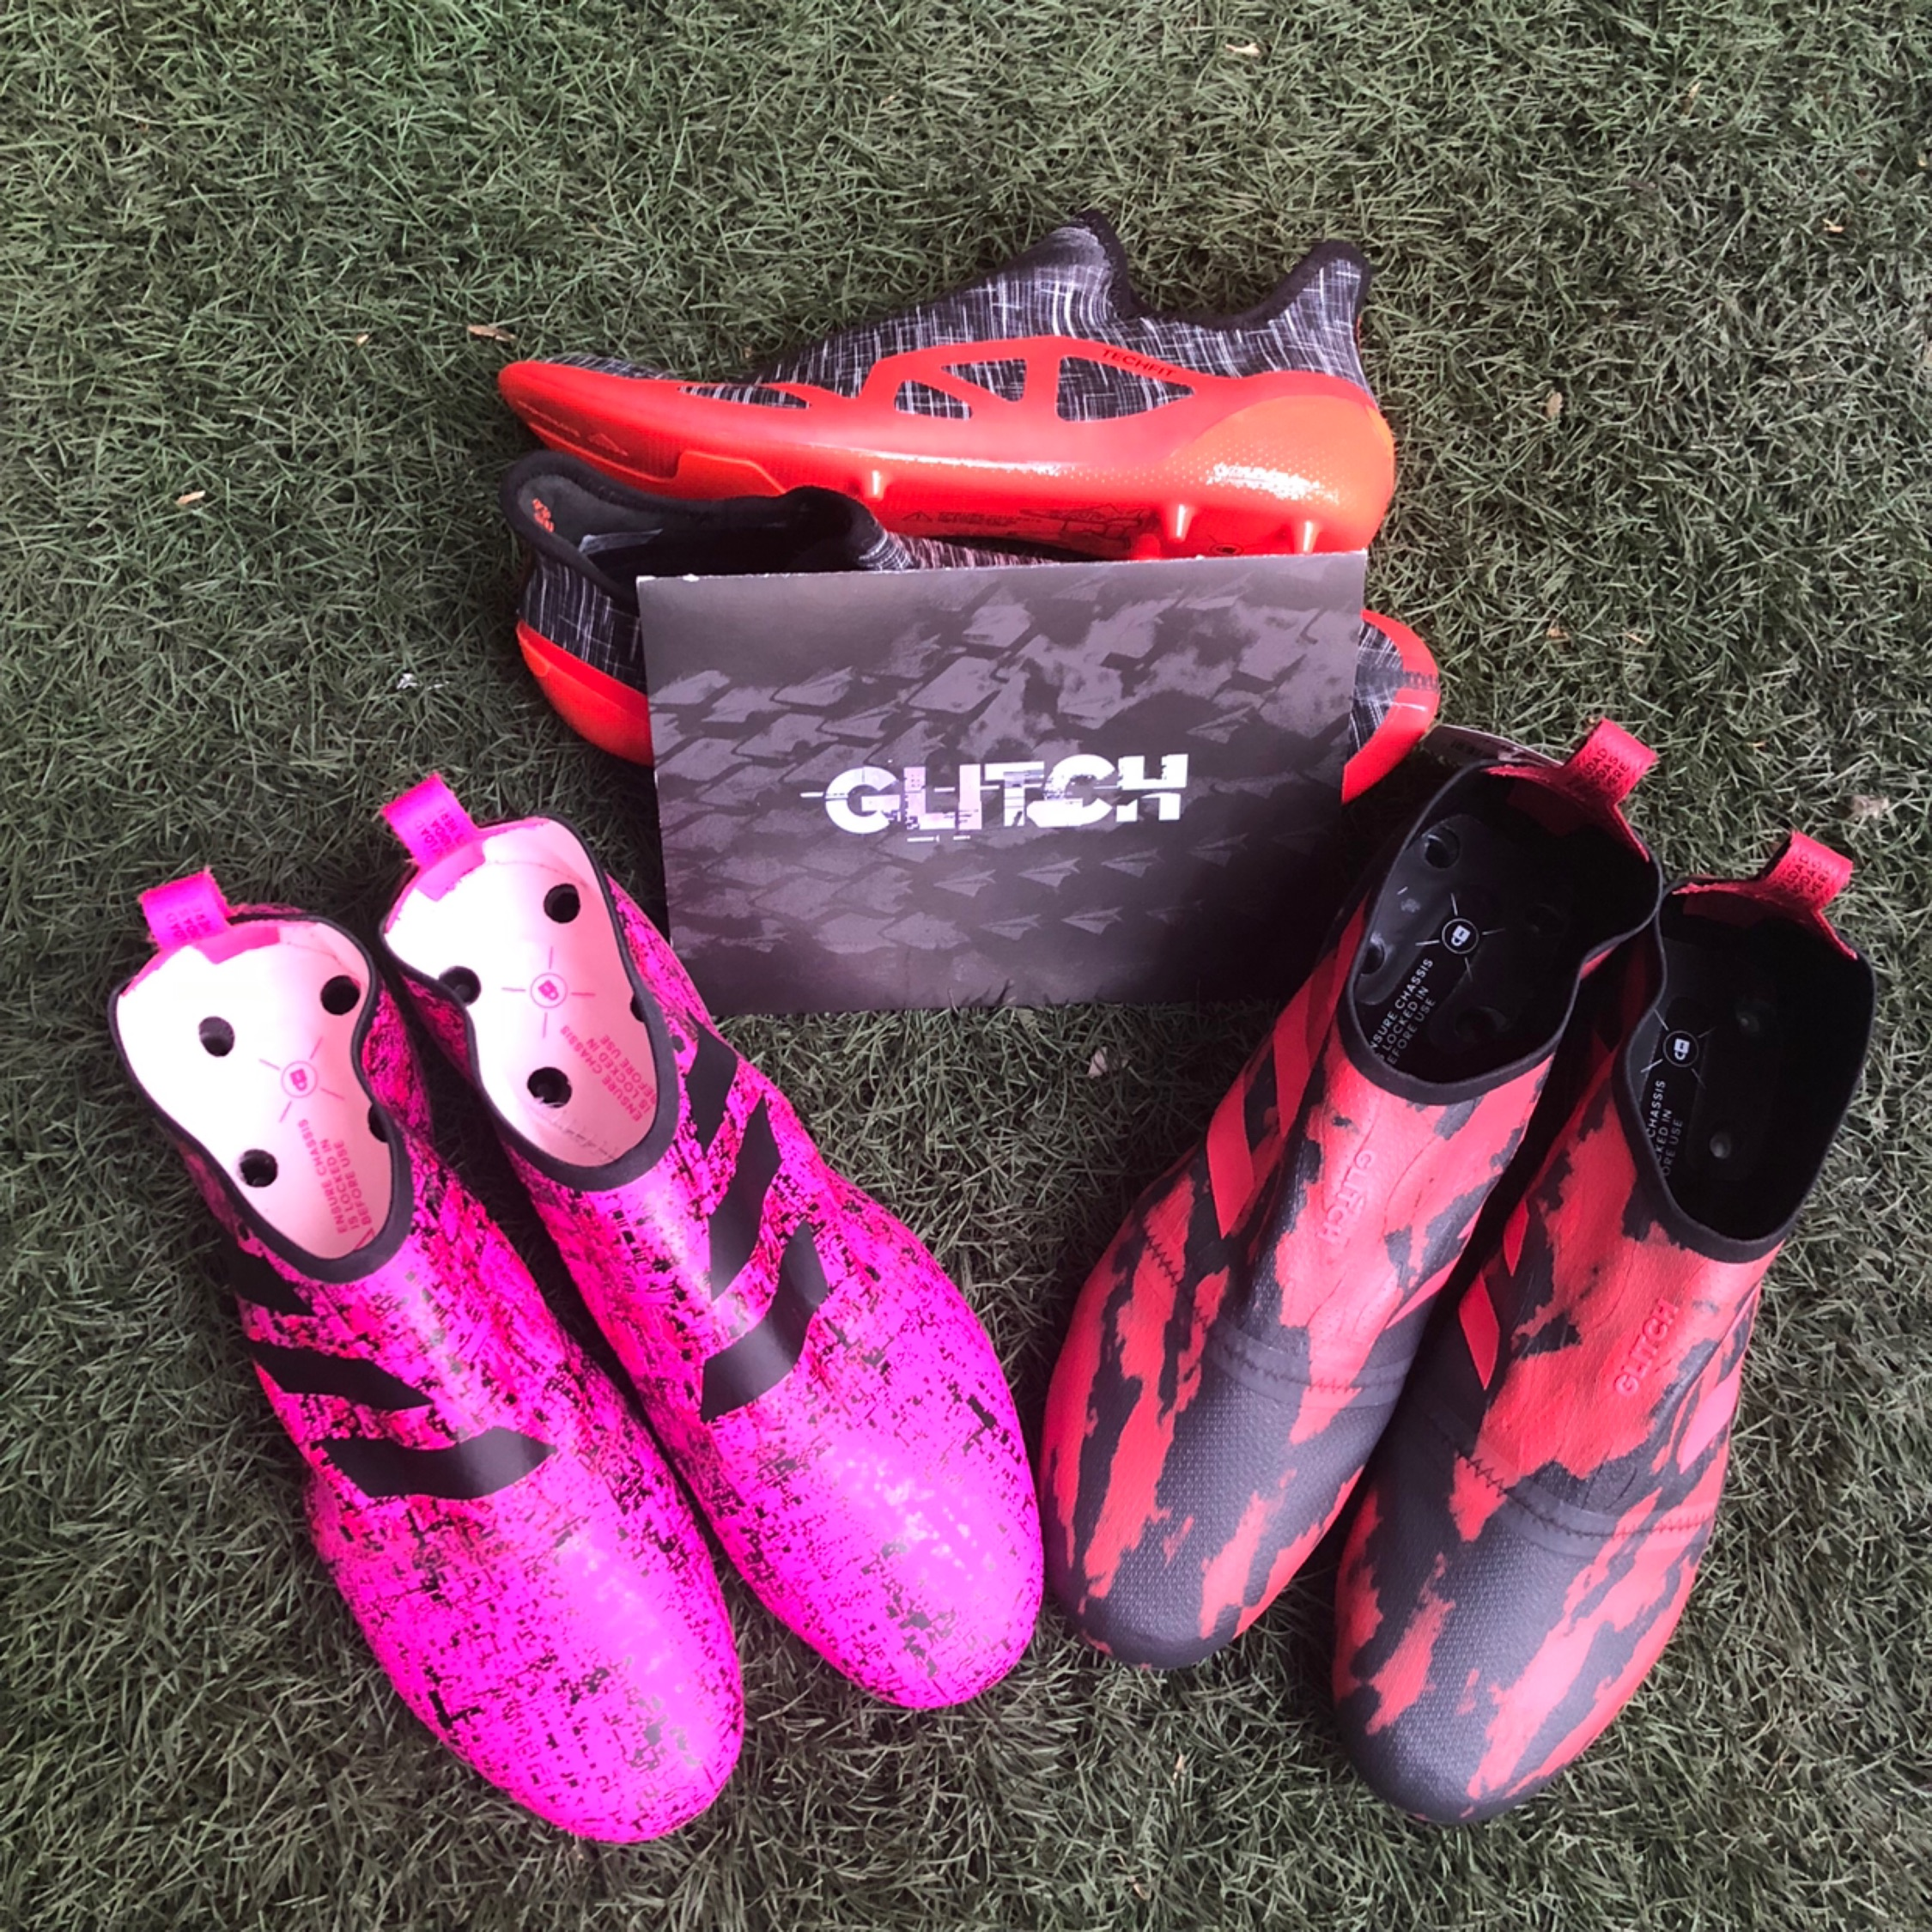 Exclusive Adidas Glitch Football Boots